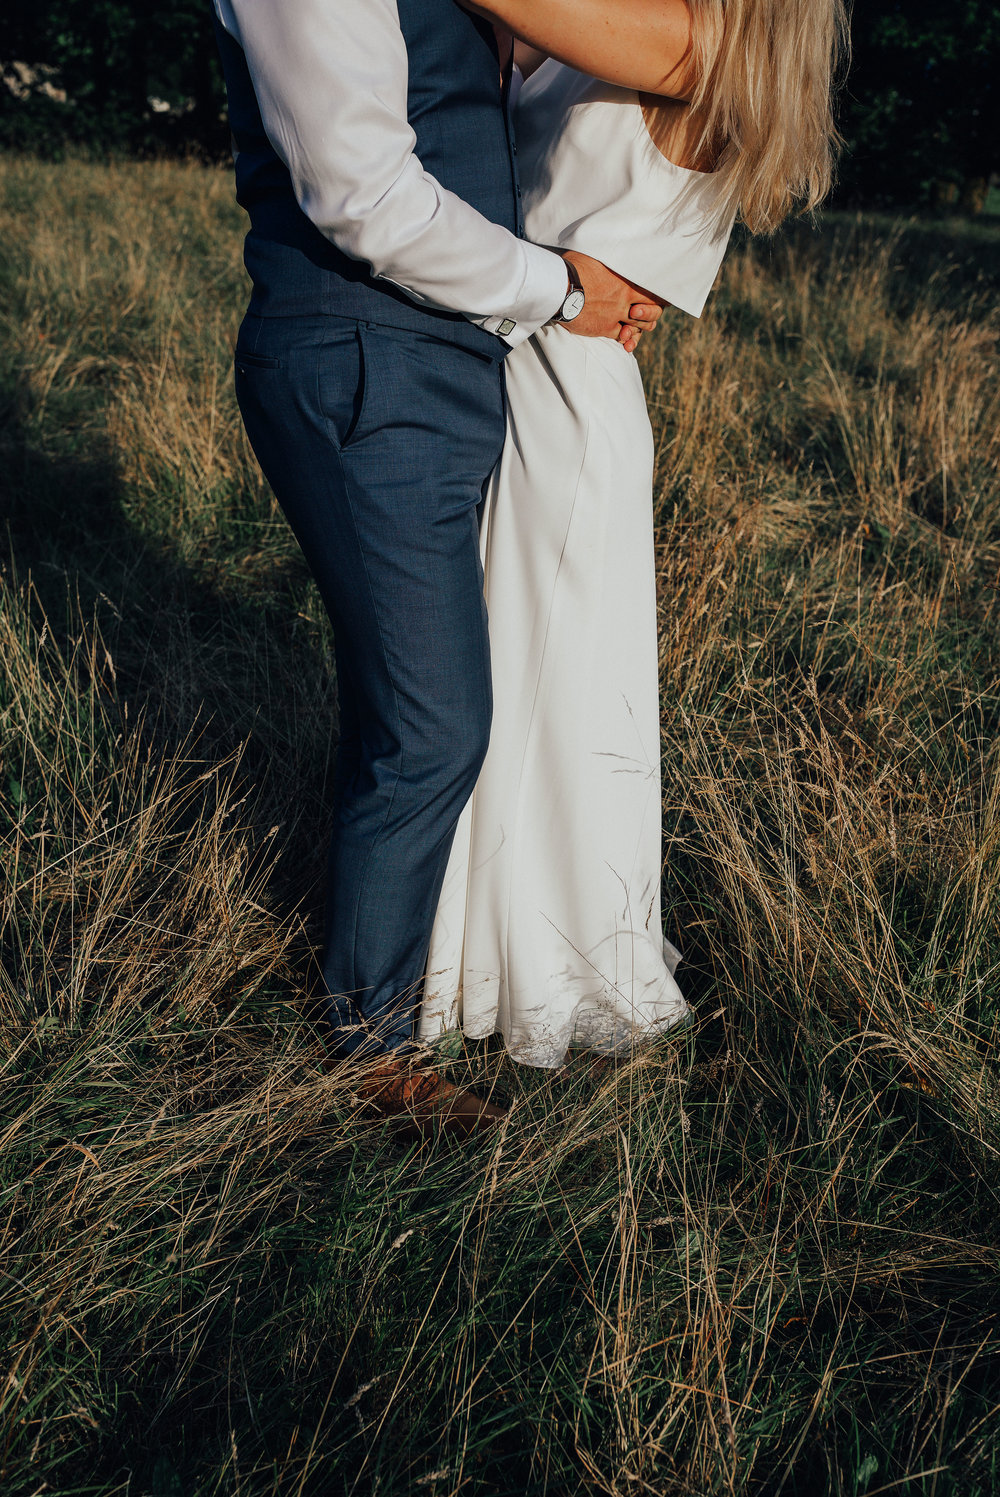 PJ_PHILLIPS_PHOTOGRAPHY_YORKSHIRE_WEDDING_PHOTOGRAPHER_HENRY_SOPHIE_SPORTSMANS_ARMS_PATELEY_BRIDGE_107.jpg